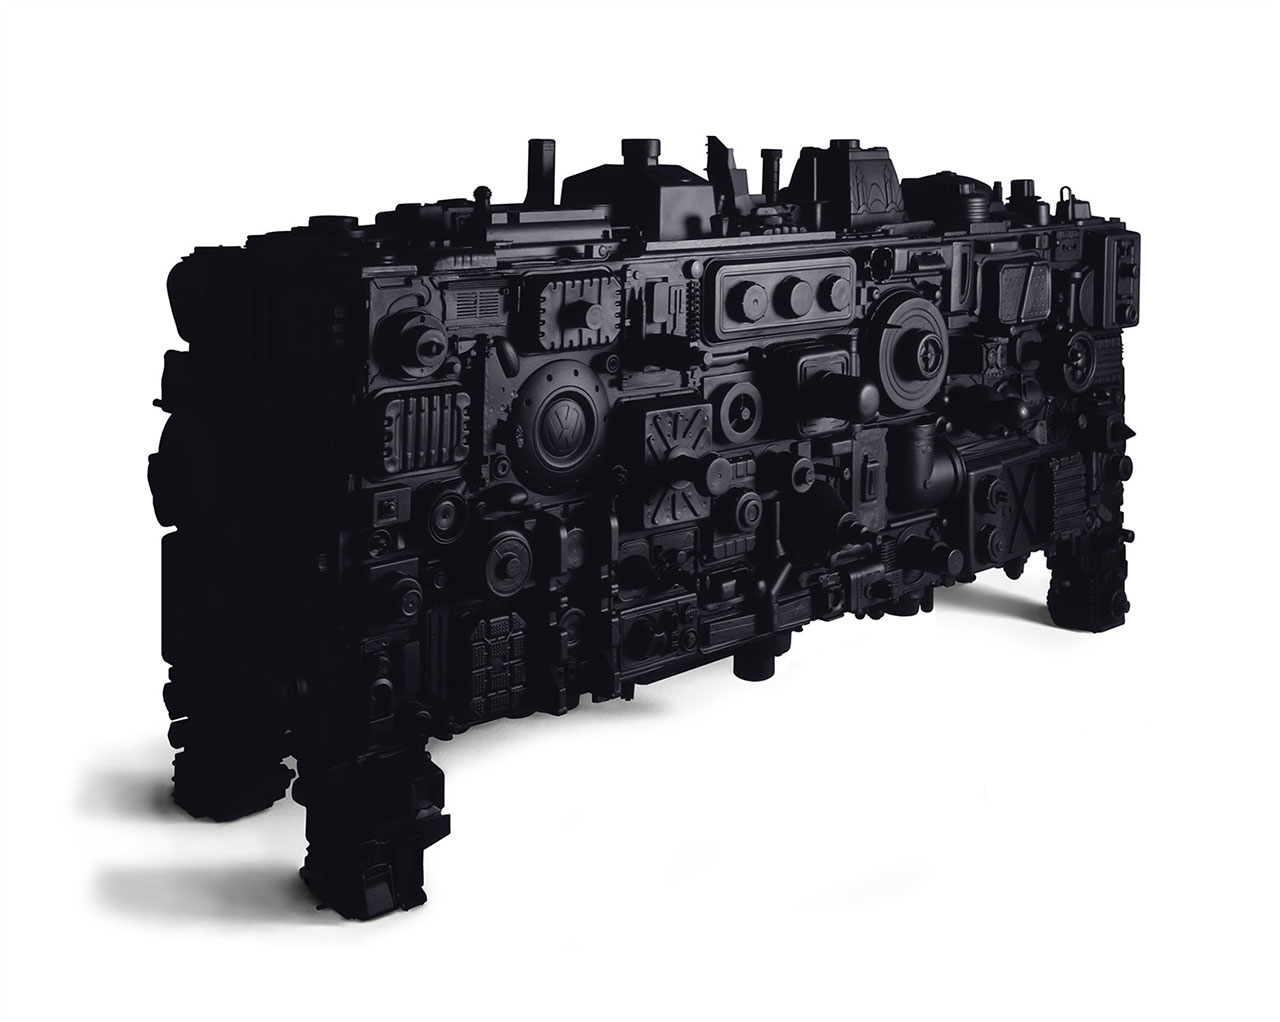 Stuart Haygarth, Barnacle (Black), 2009. Black polyester resin, steel, painted MDF. Photo courtesy Carpenters Workshop Gallery.